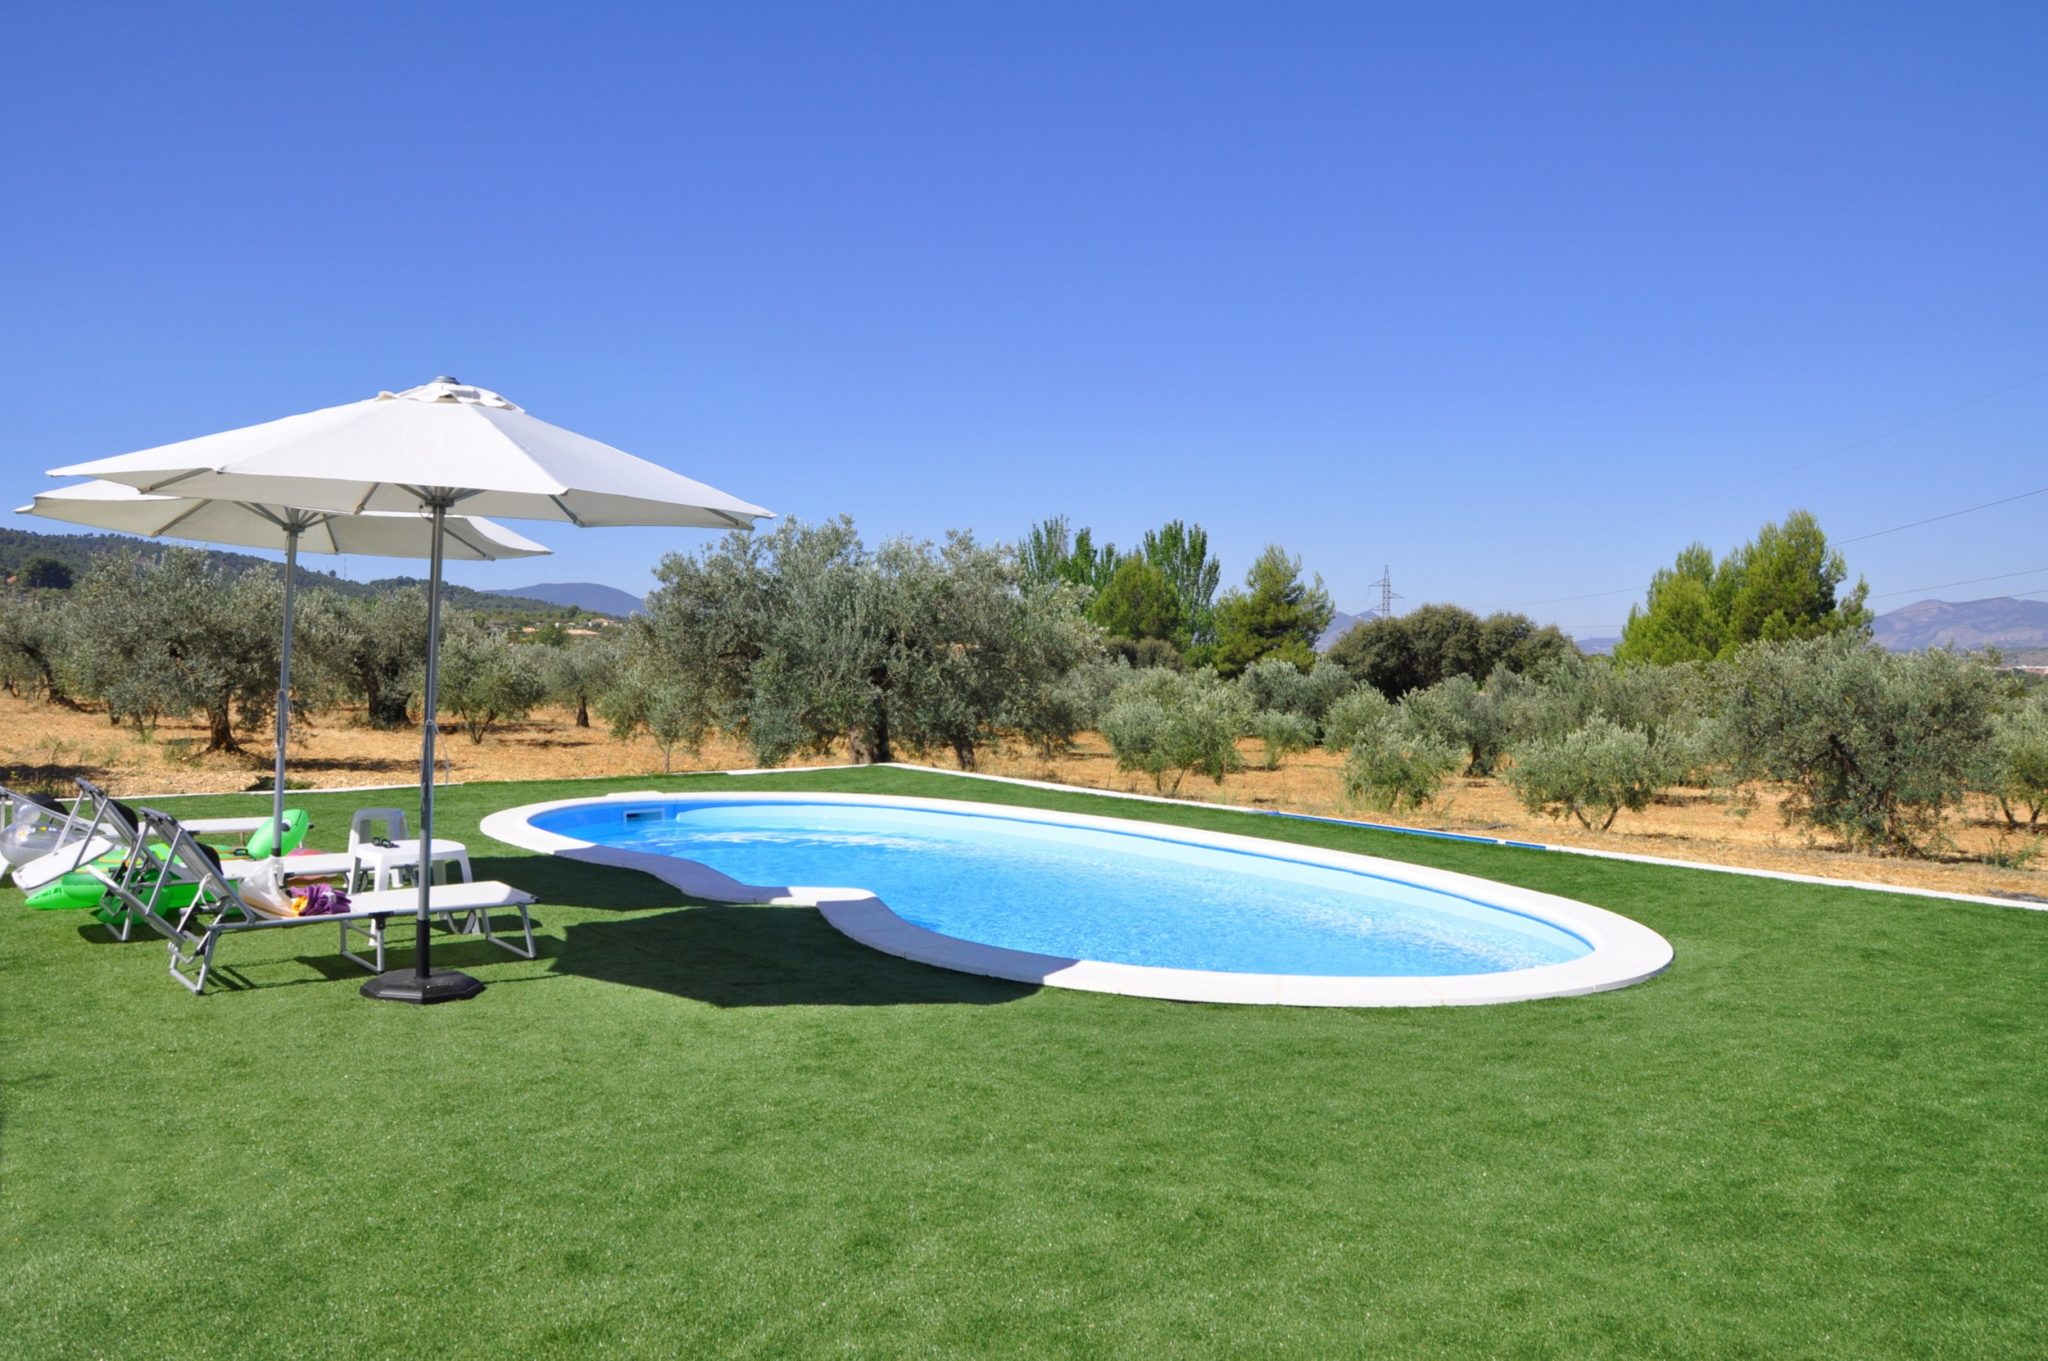 artificial grass pool areas